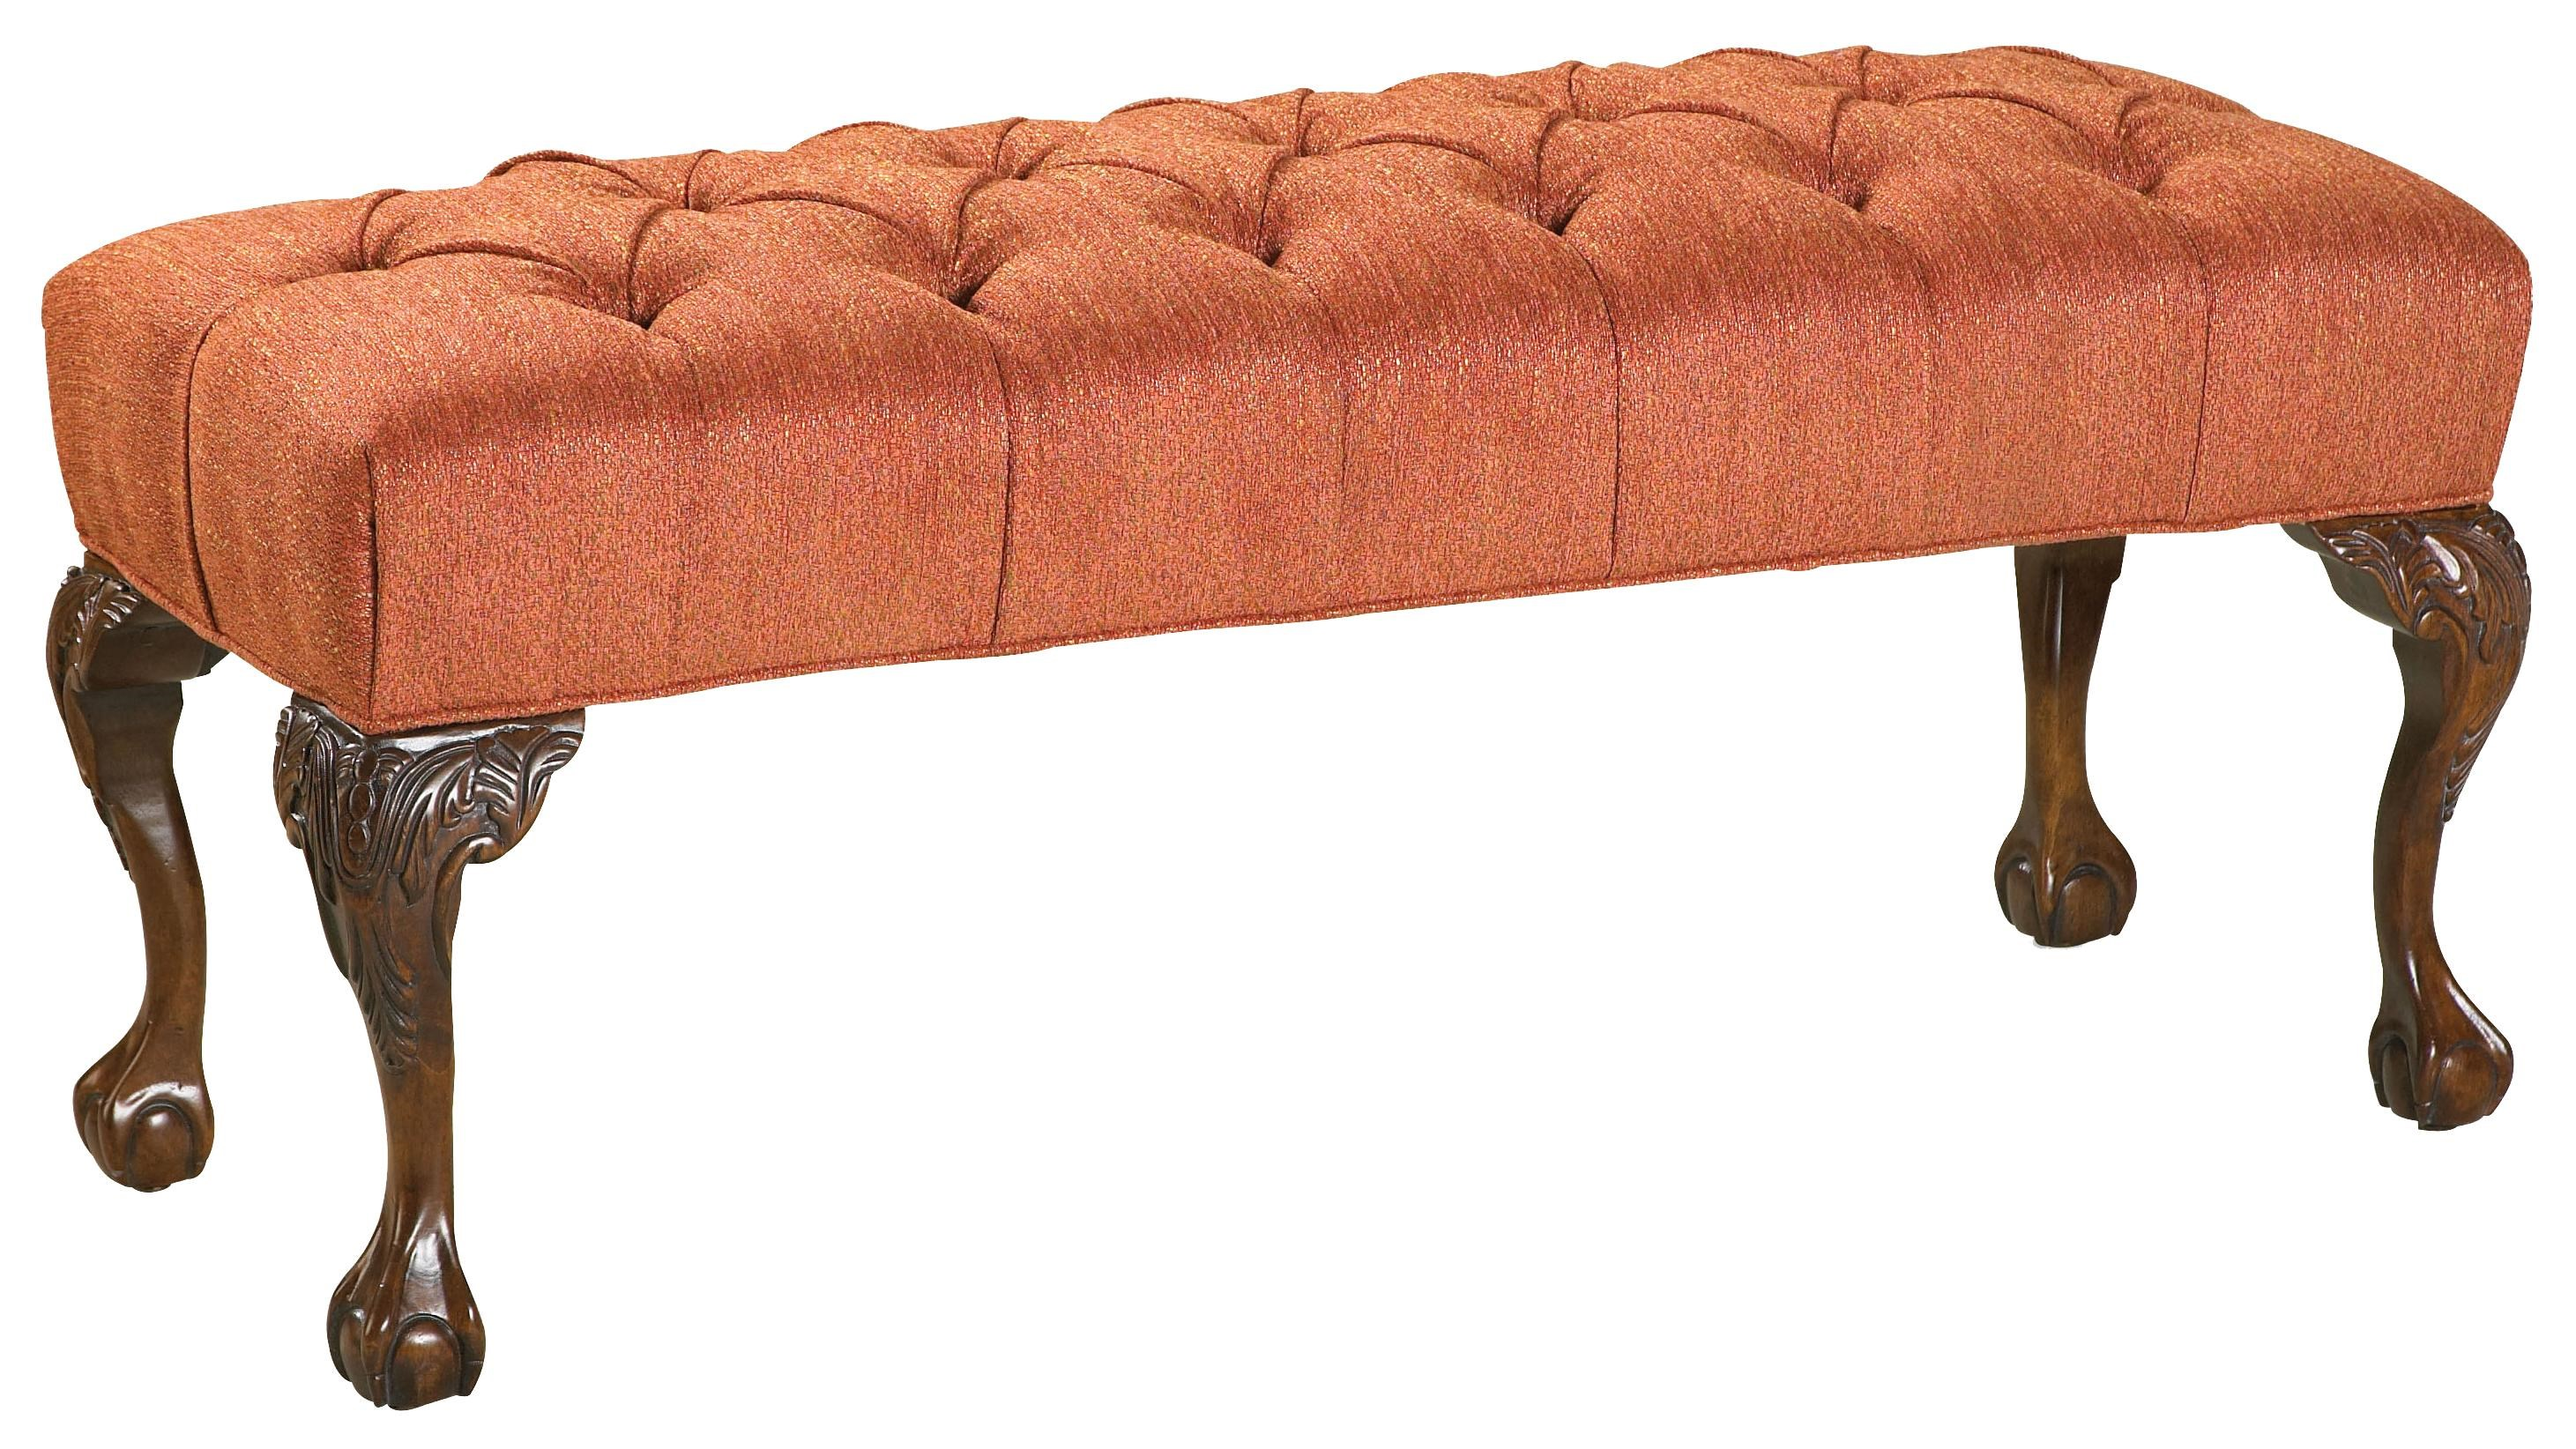 Fairfield Benches Victorian Tufted Seat Bench - Wayside ...